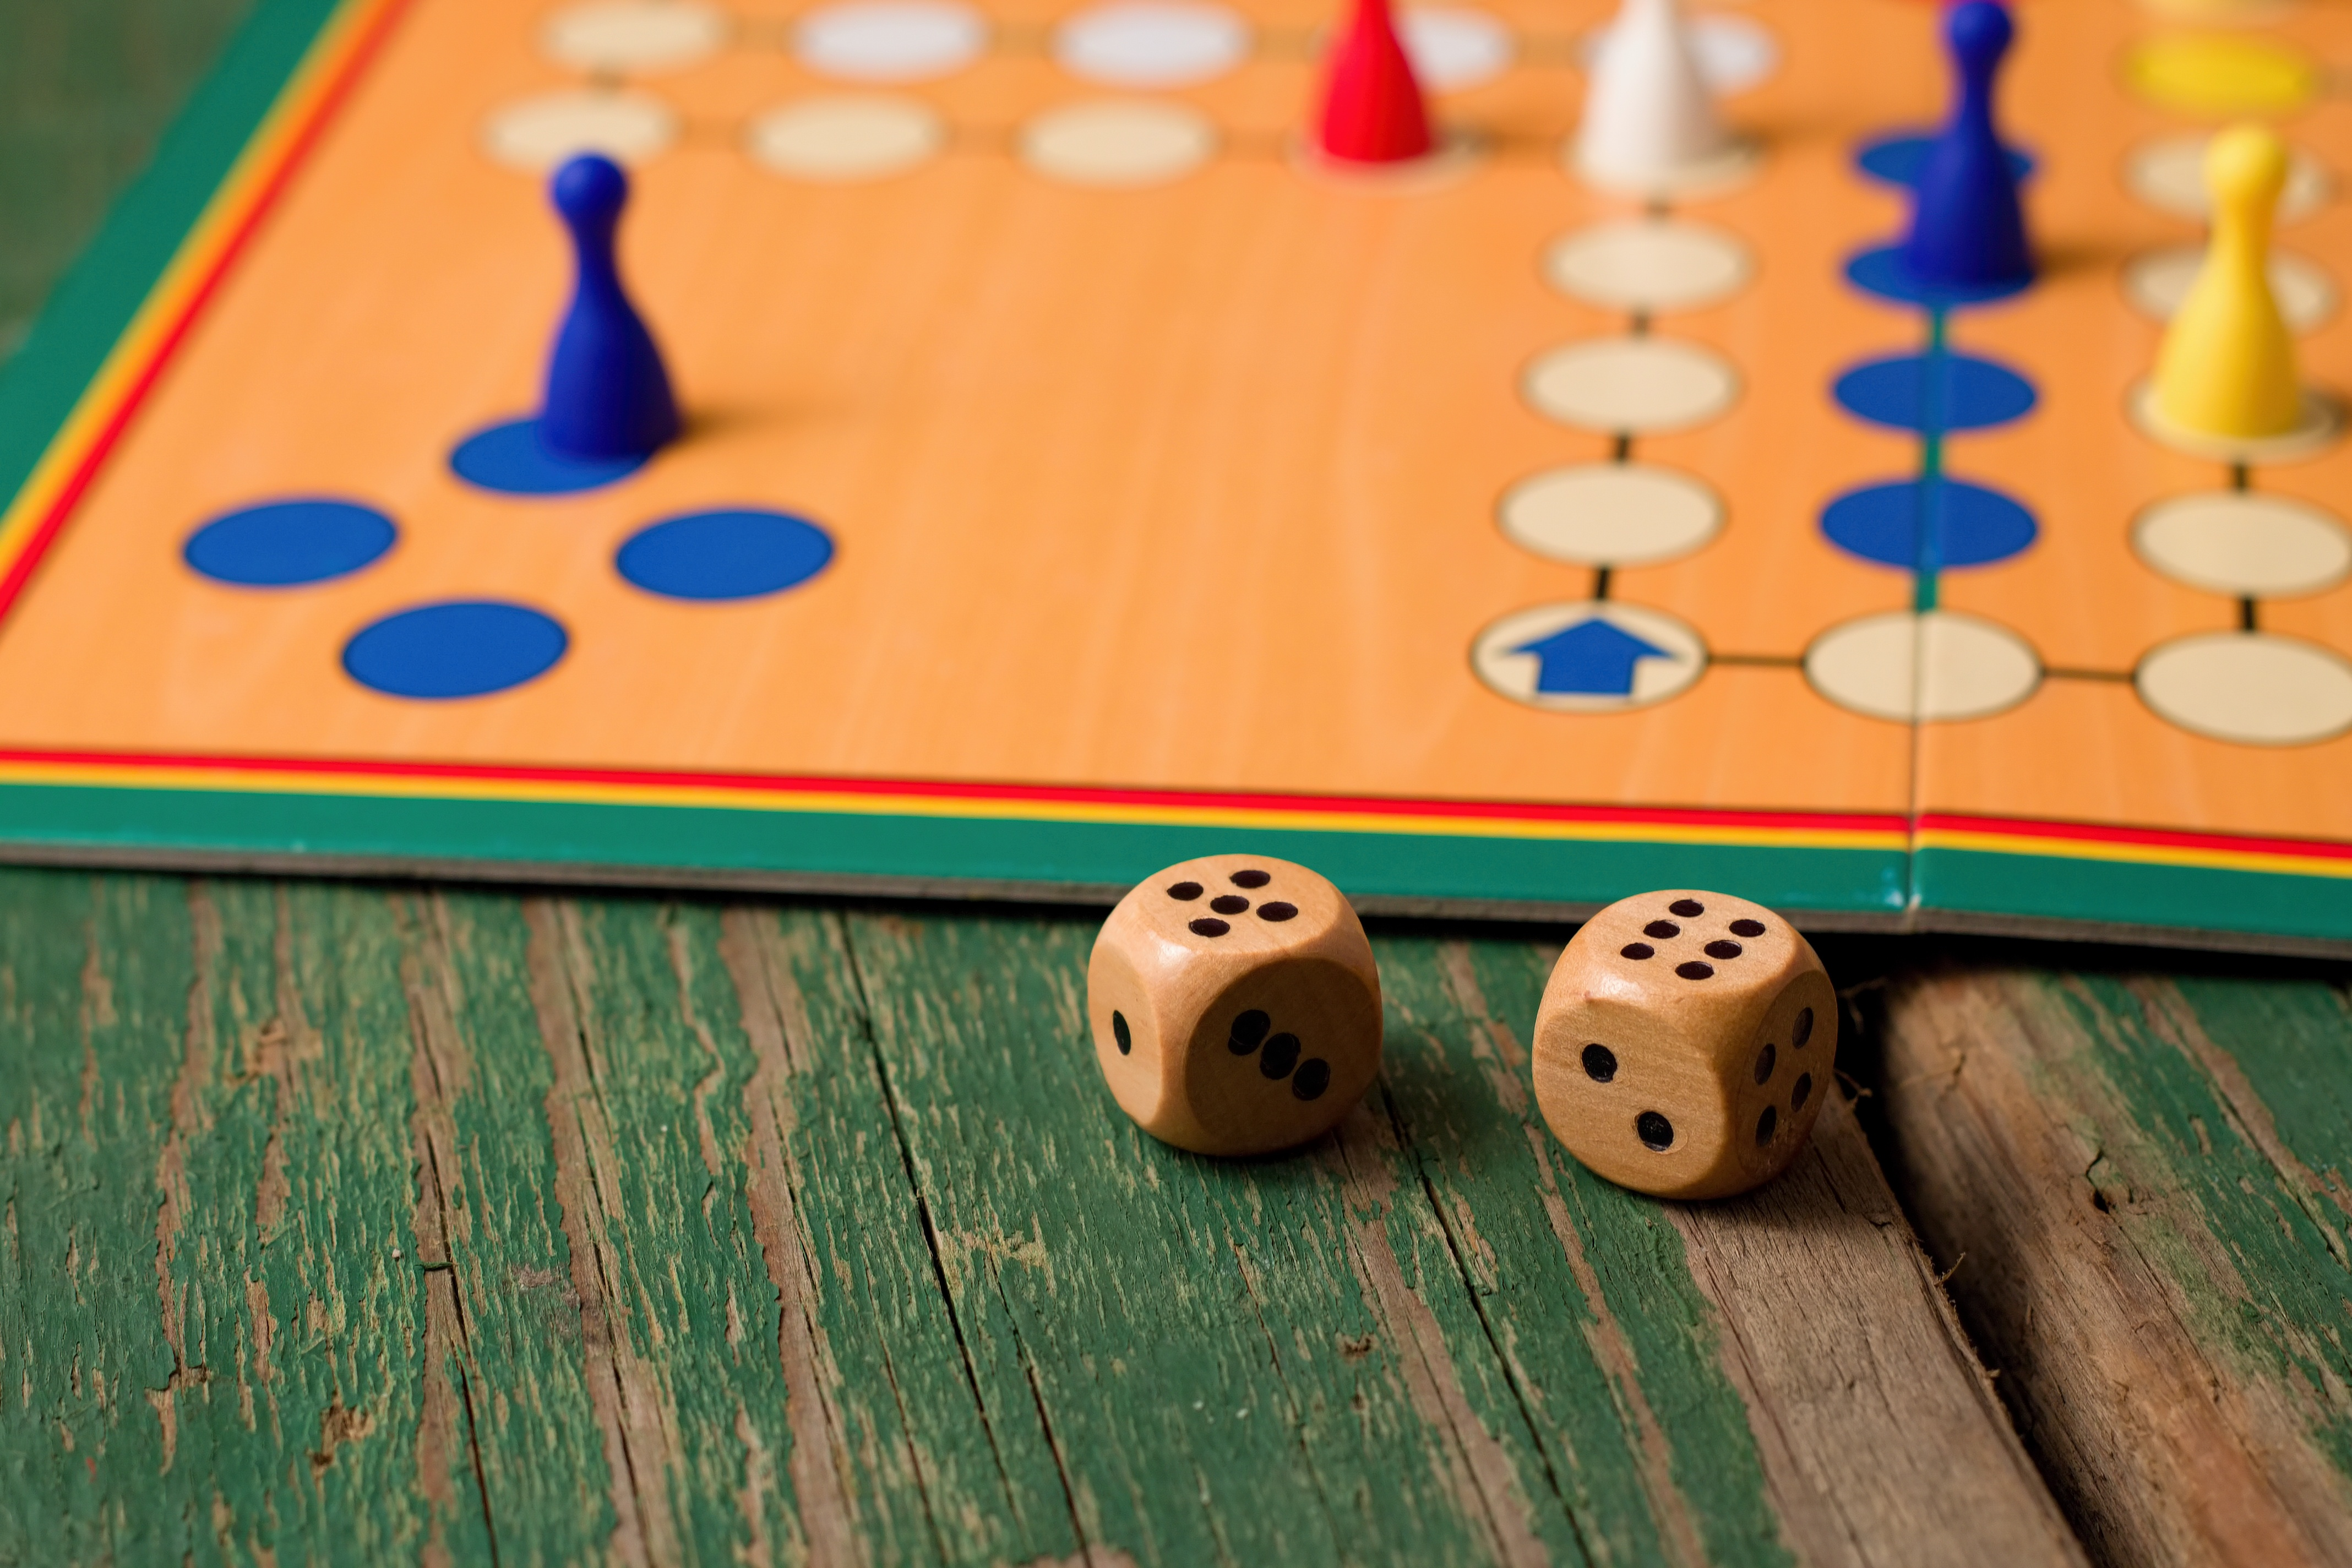 Classic board games like Clue, Monopoly, and Operation remain popular among baby boomers games